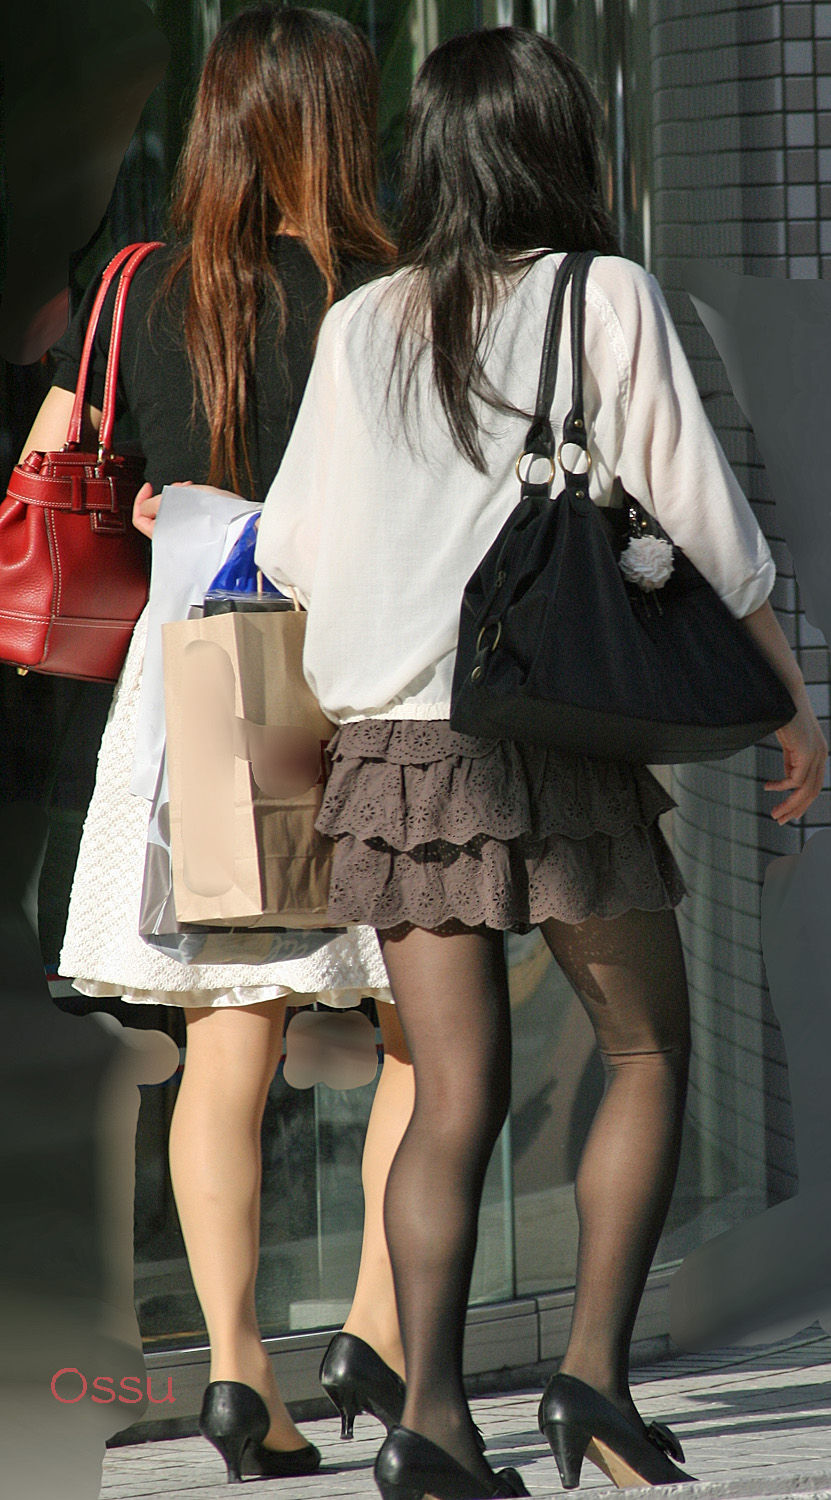 2 candid women legs feet pantyhose nylons lunchtime - 2 9